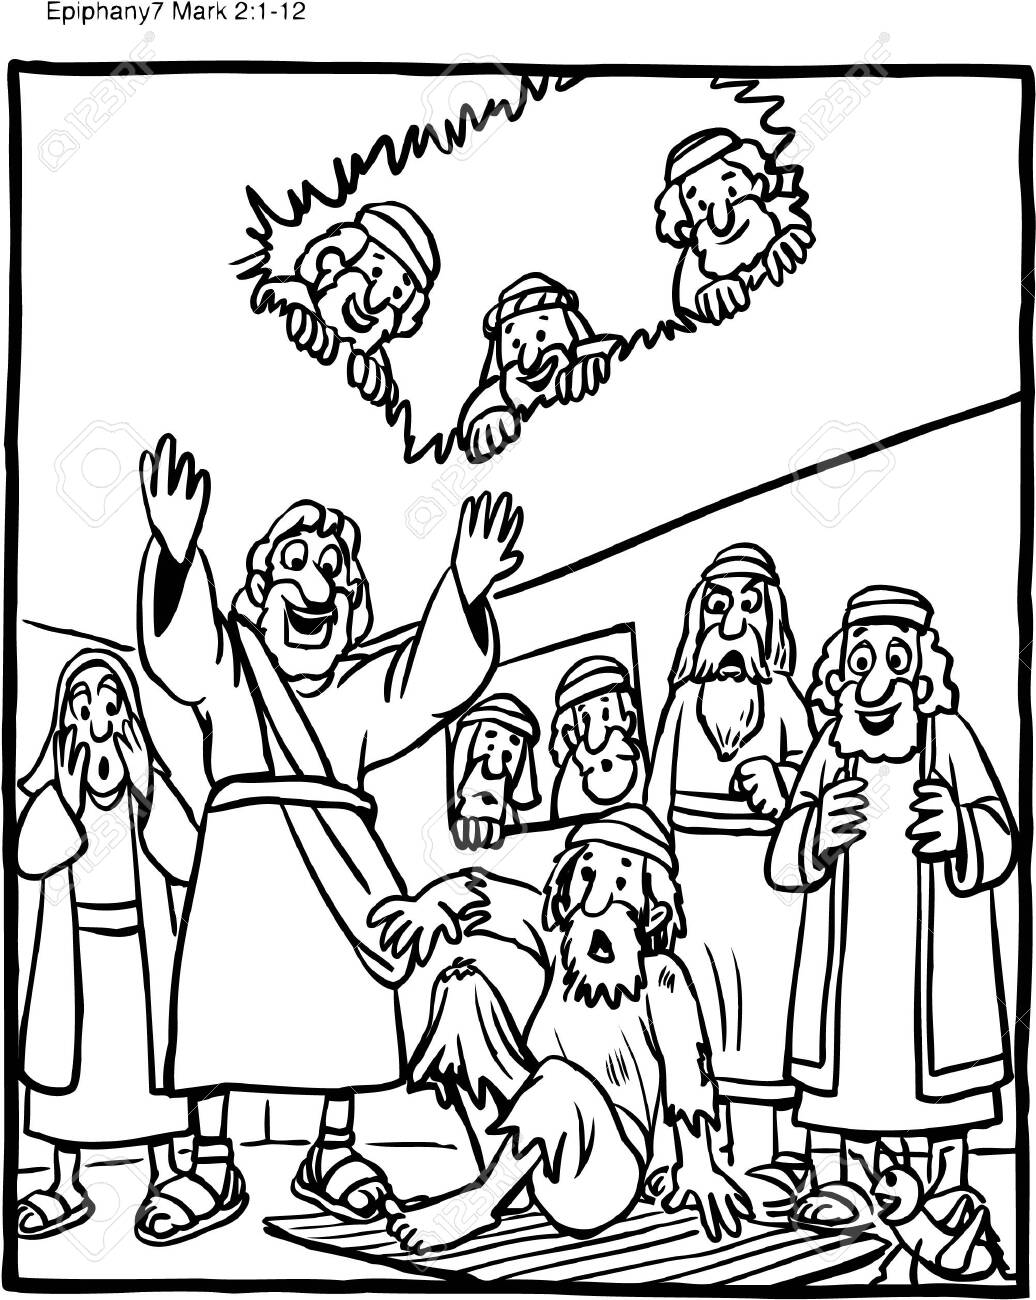 Jesus Heals a Man with a Withered Hand coloring page | Free ... | 1300x1036